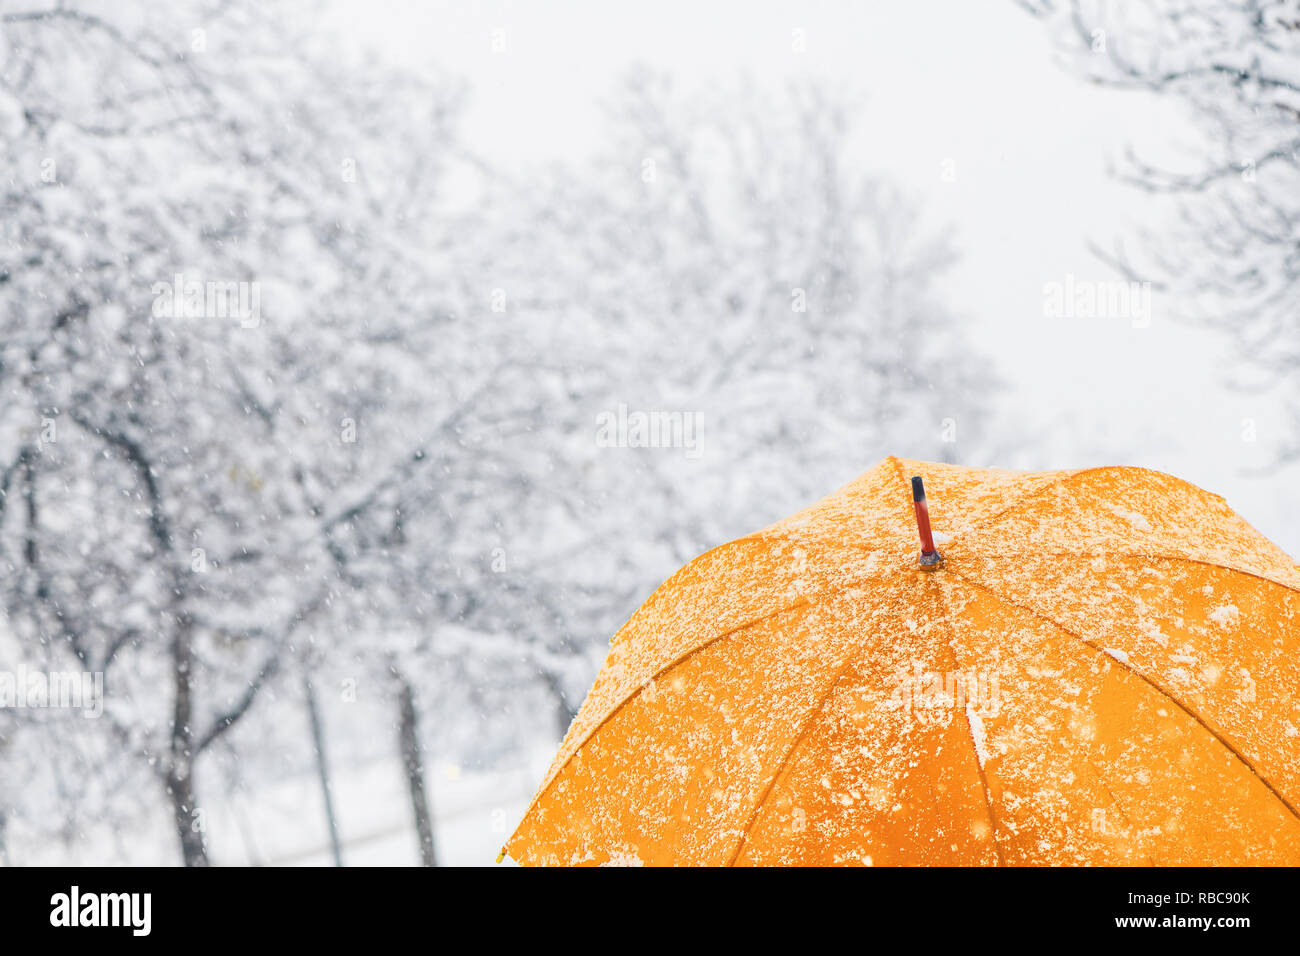 Close up of yellow umbrella in snow with frost and snowflakes - Stock Image